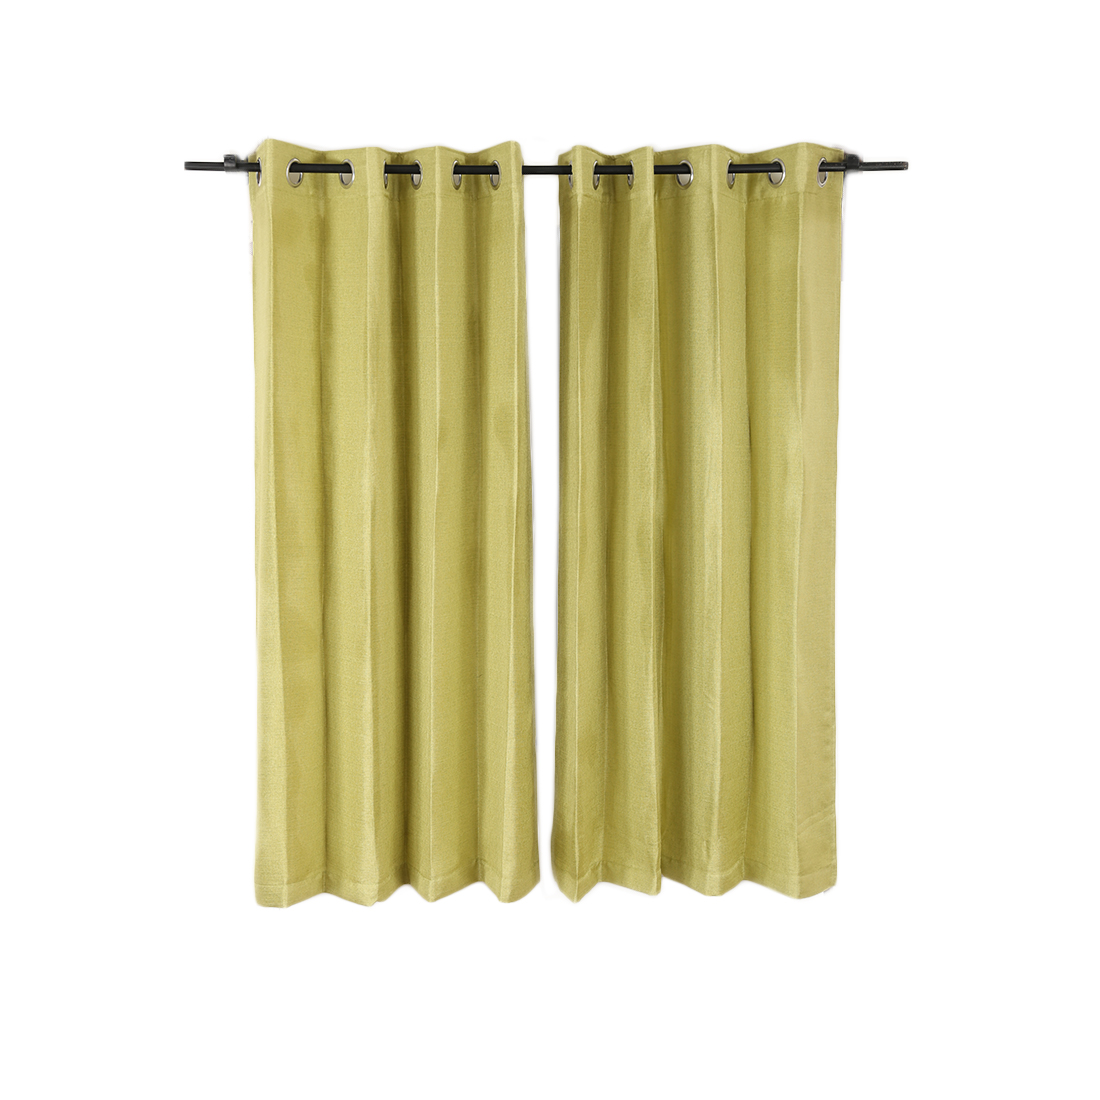 Textura Window Curtain Green Set of 2 Polyester Window Curtains in Green Colour by Living Essence